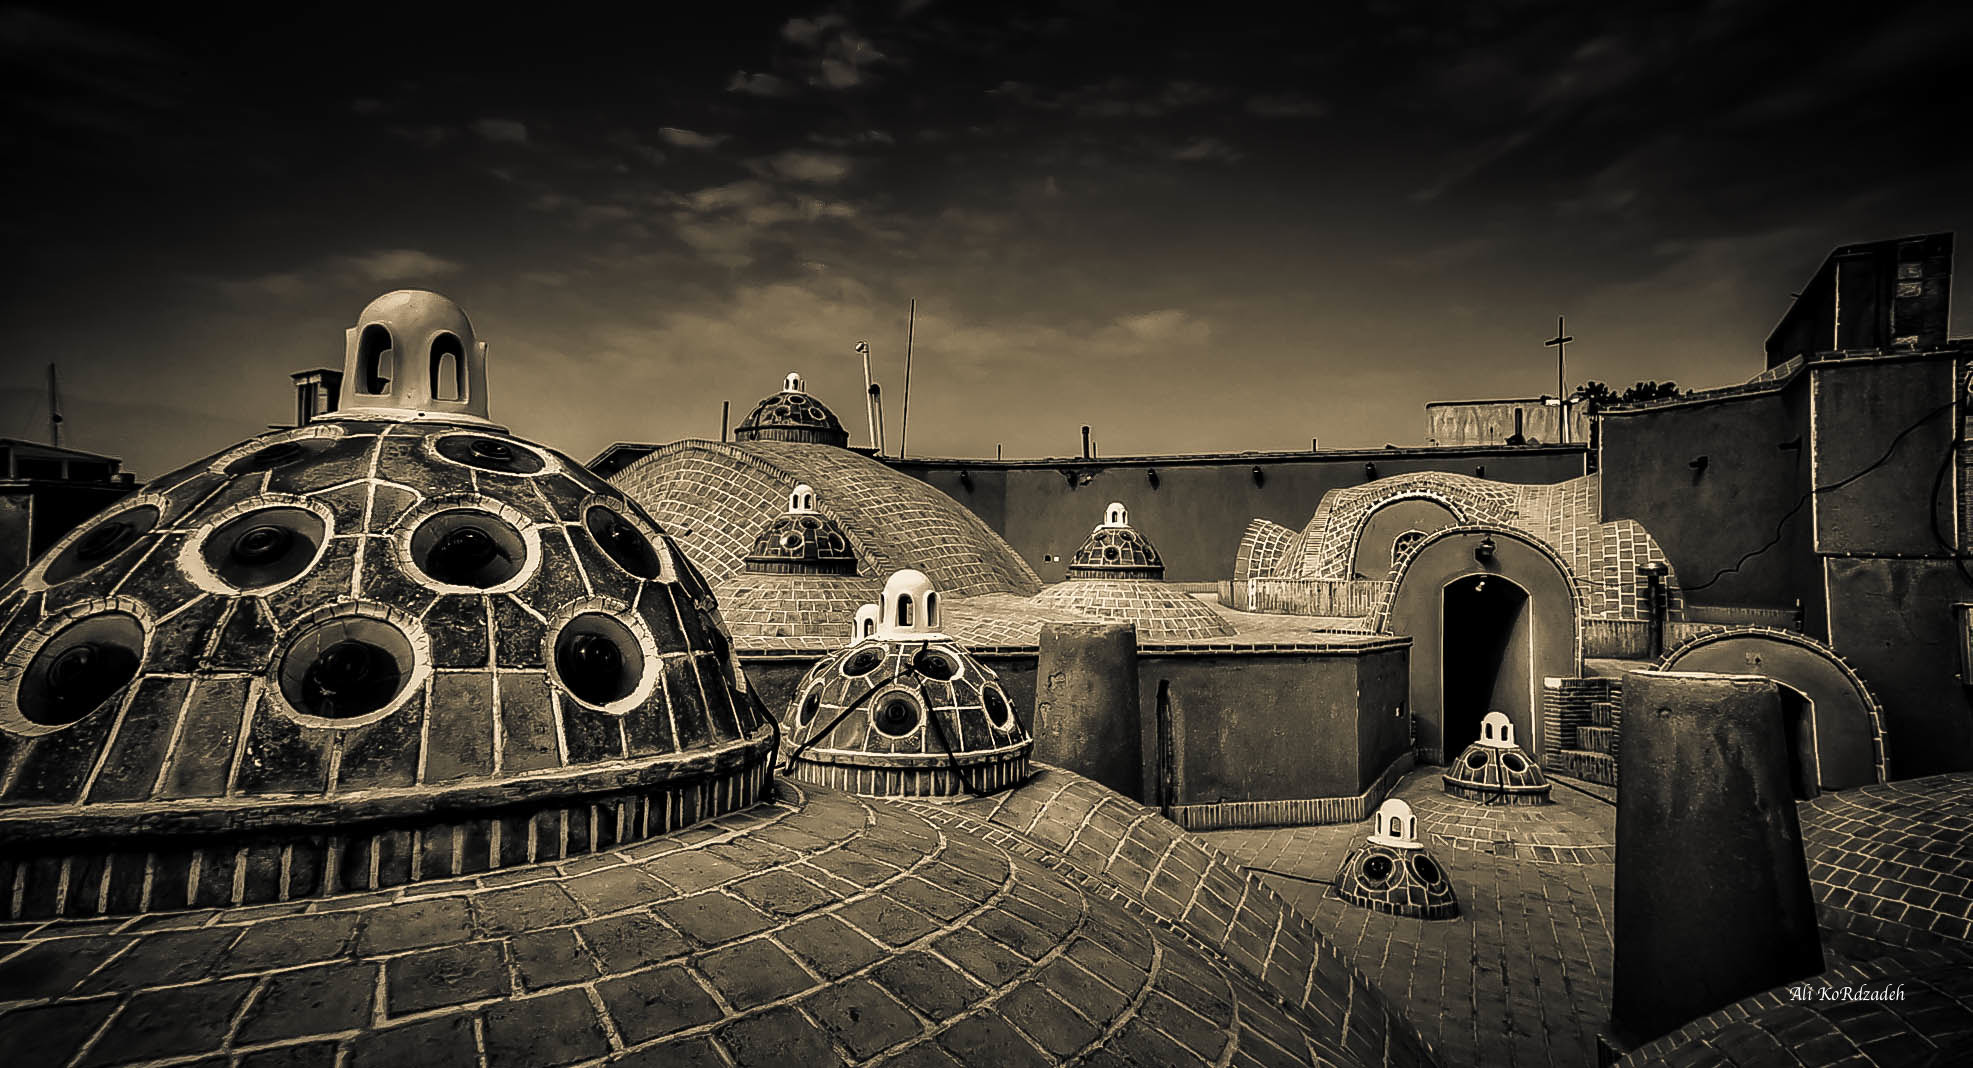 Photograph Roof Garden by Ali KoRdZaDeh on 500px